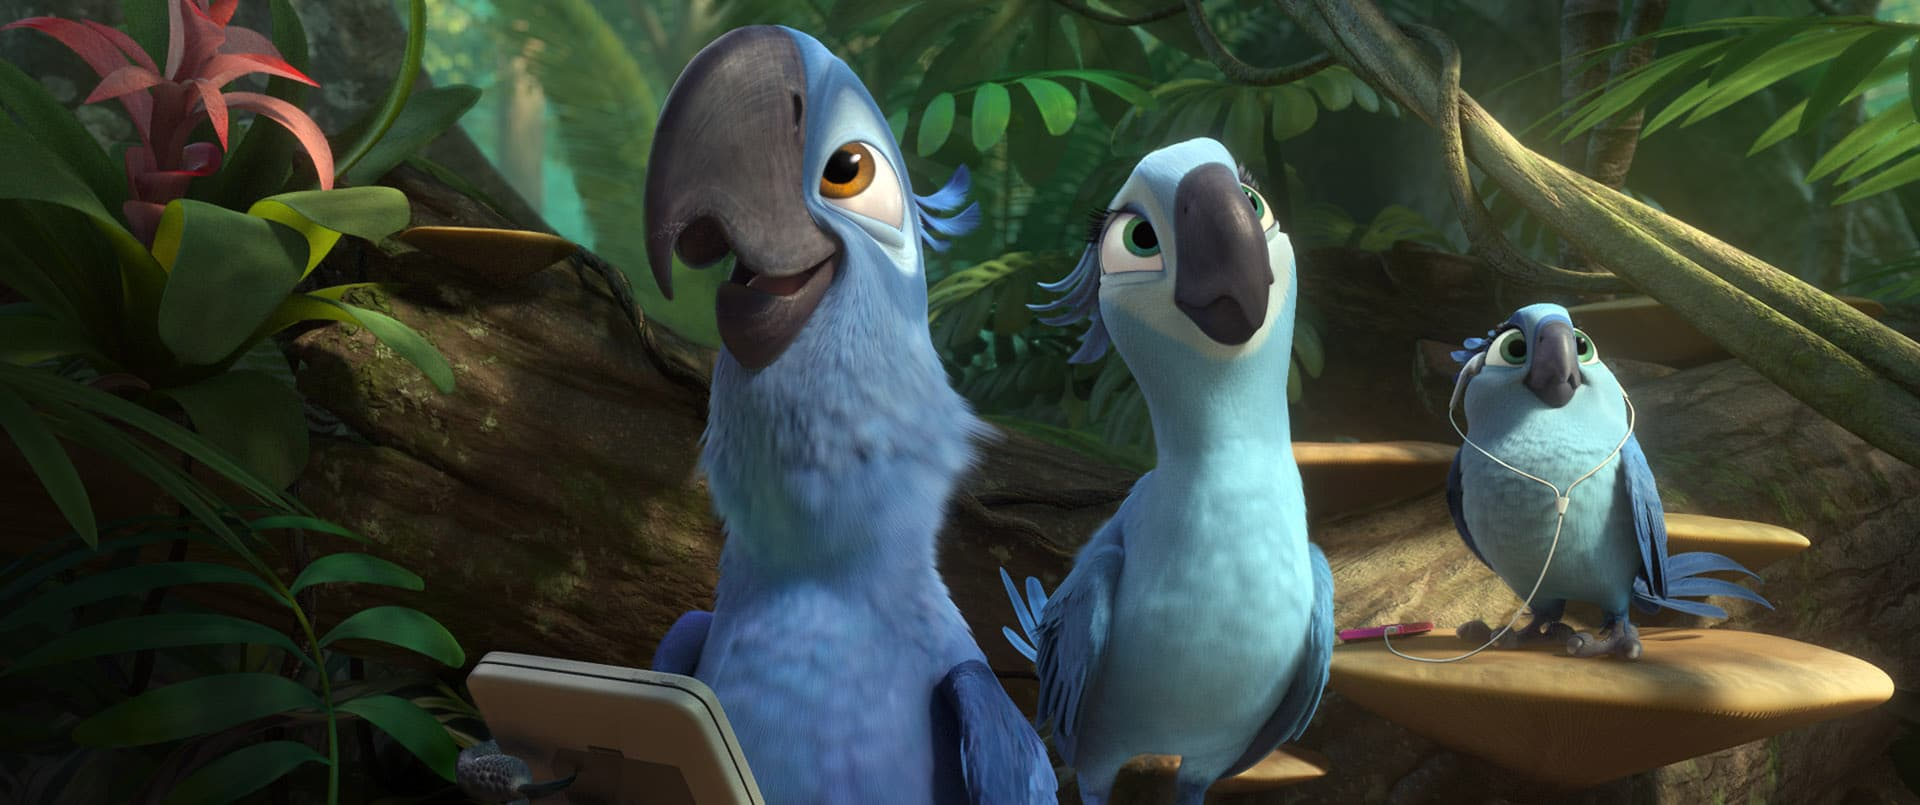 Rio 2 flies into theaters